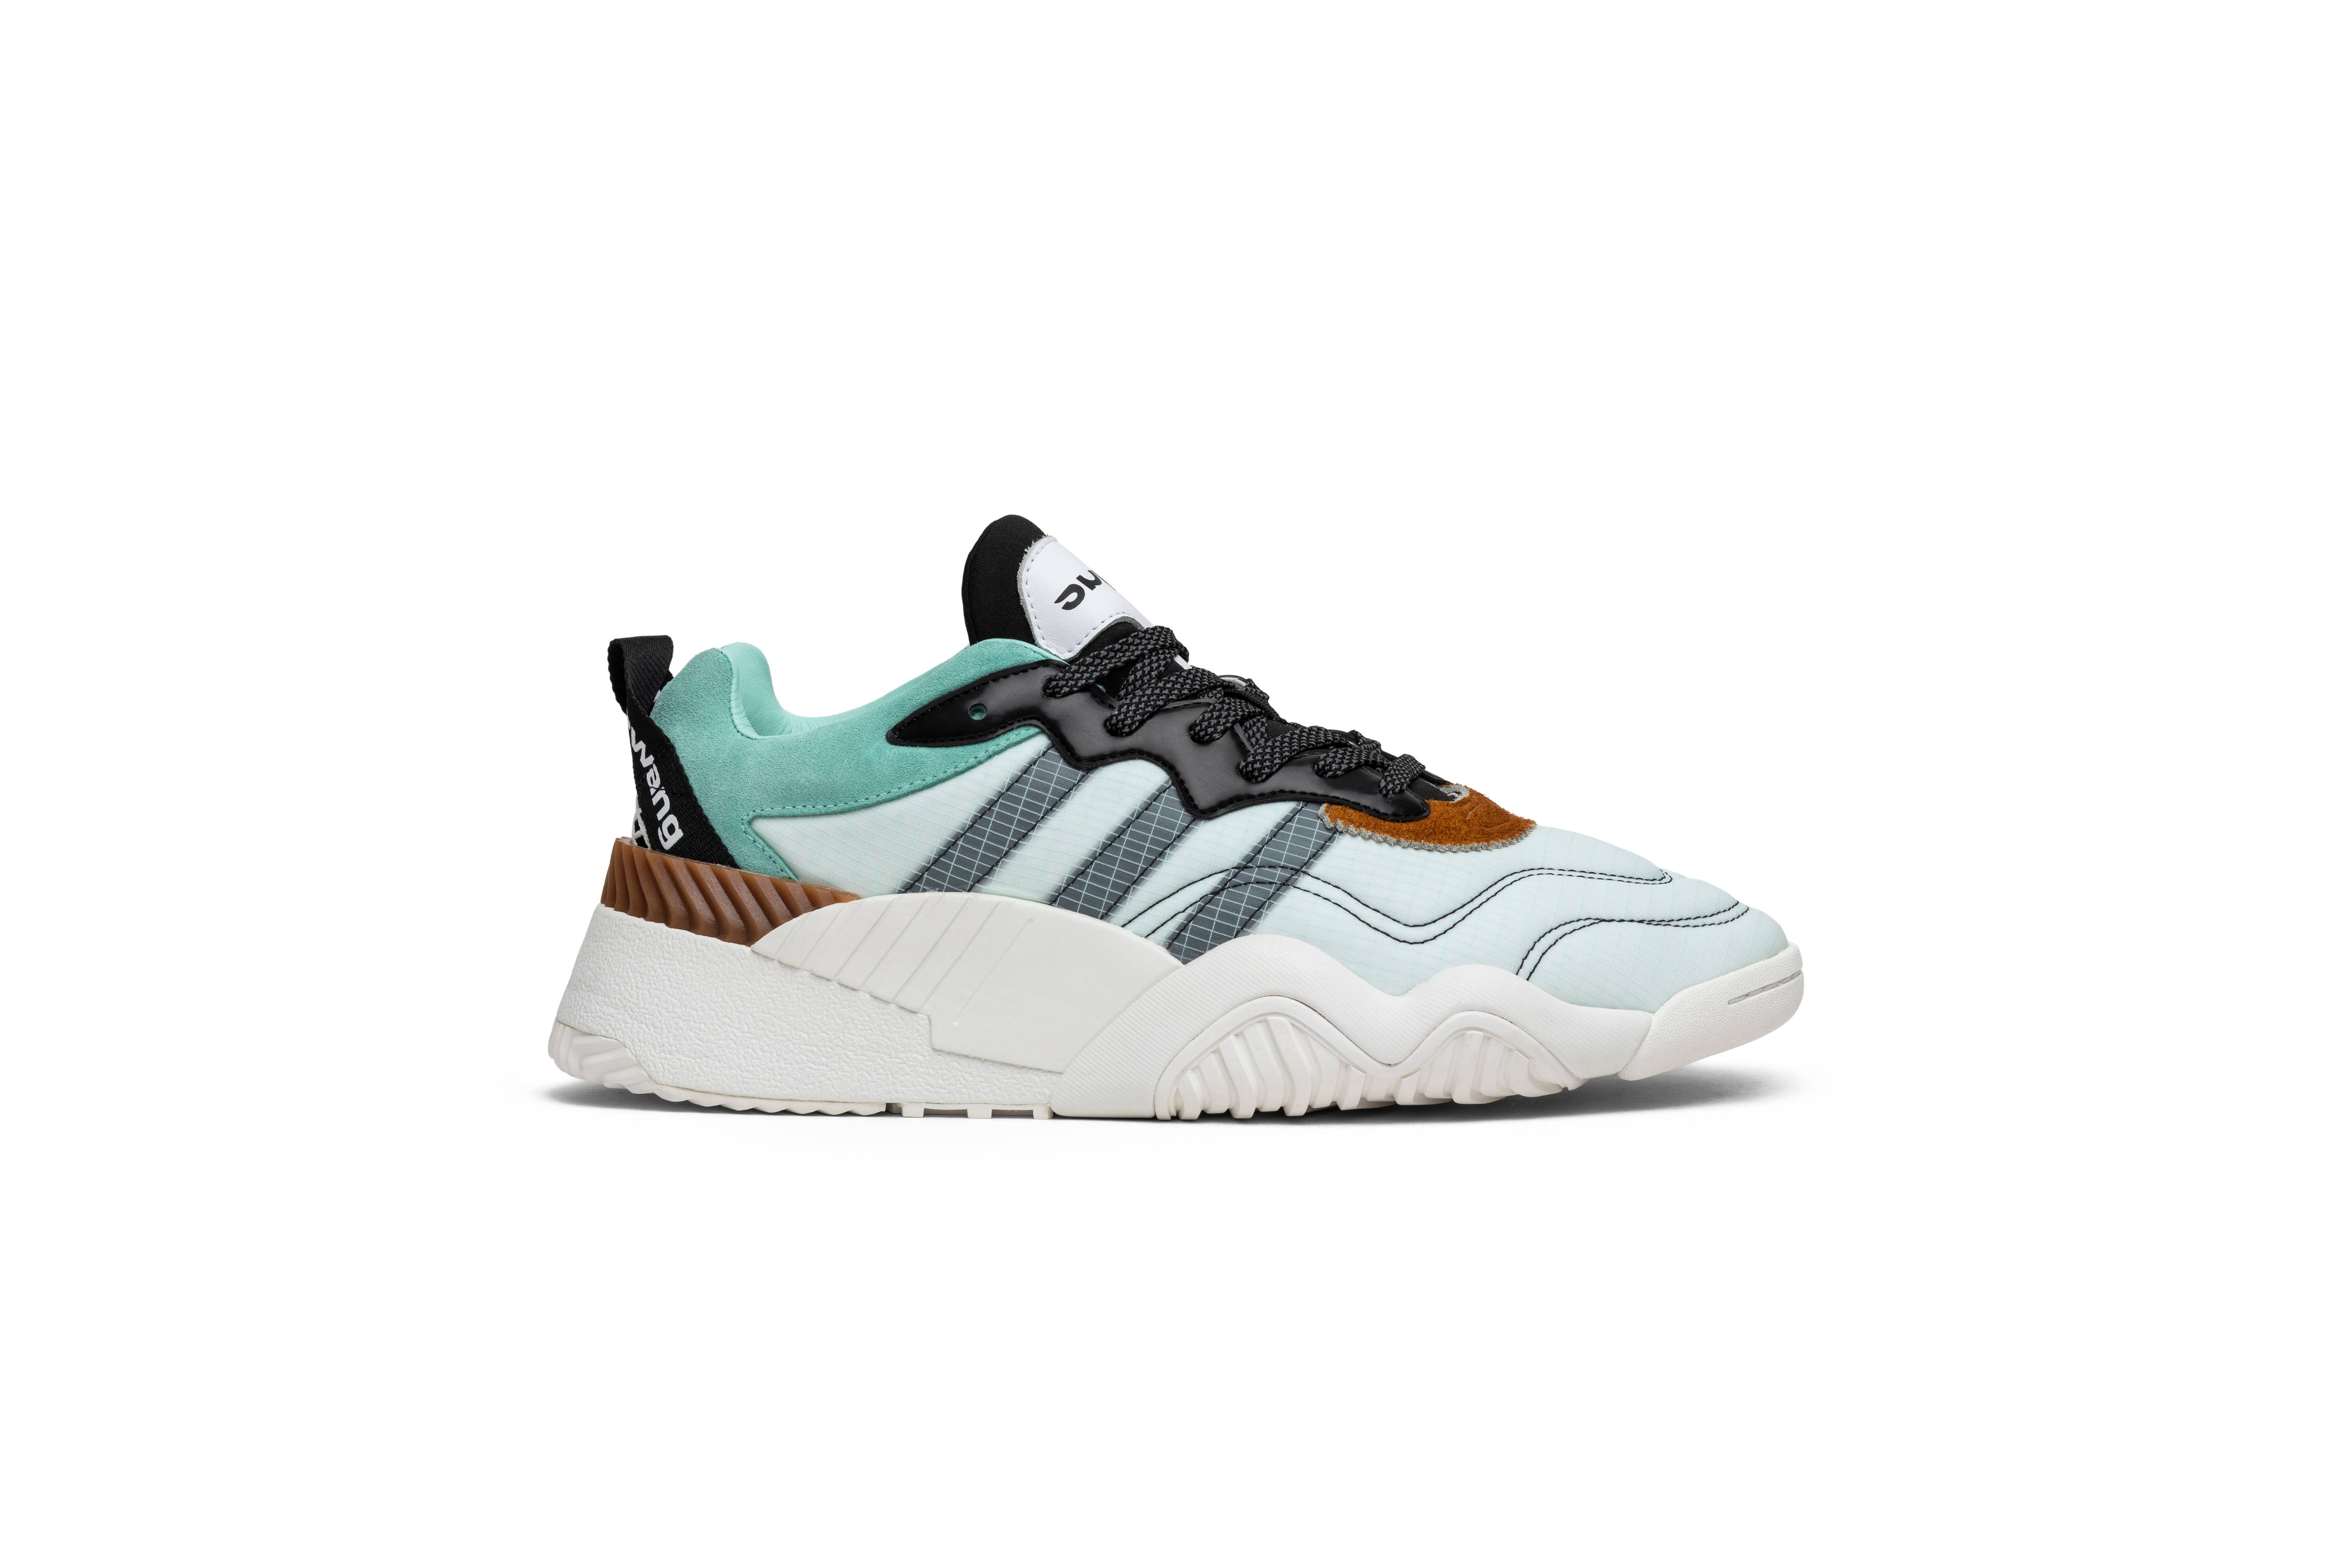 Größe Wang Mint' Mens Trainer 'clear Turnout 0 Alexander Adidas 8 X Sneakers zwxqTOW4